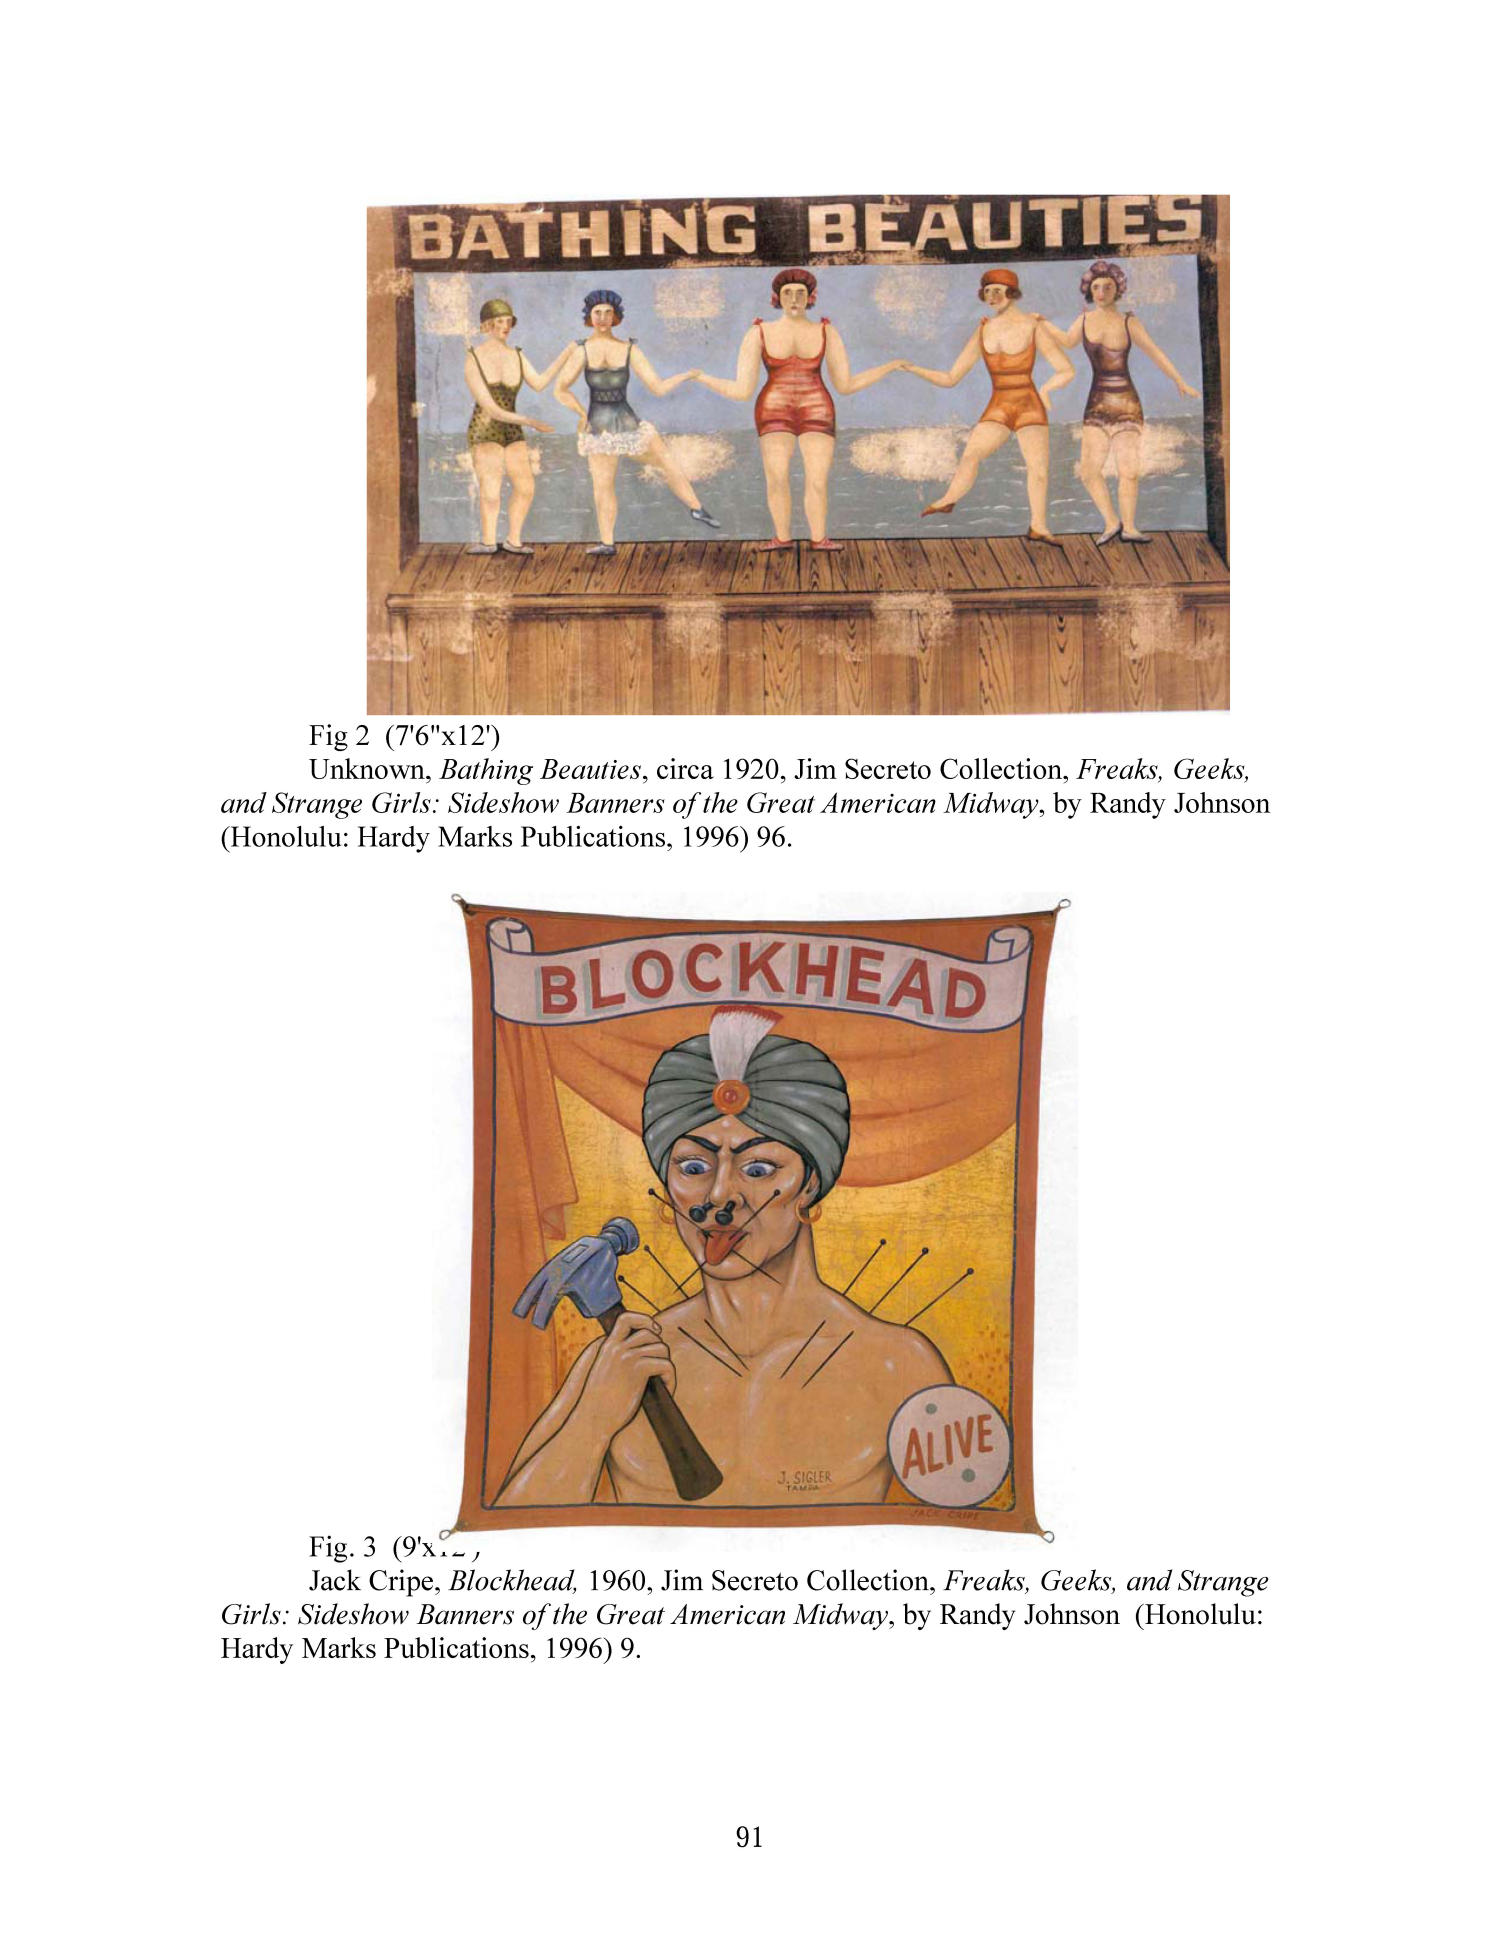 An Examination of American Sideshow Banners as Folk Art, ca. 1920-1960                                                                                                      91